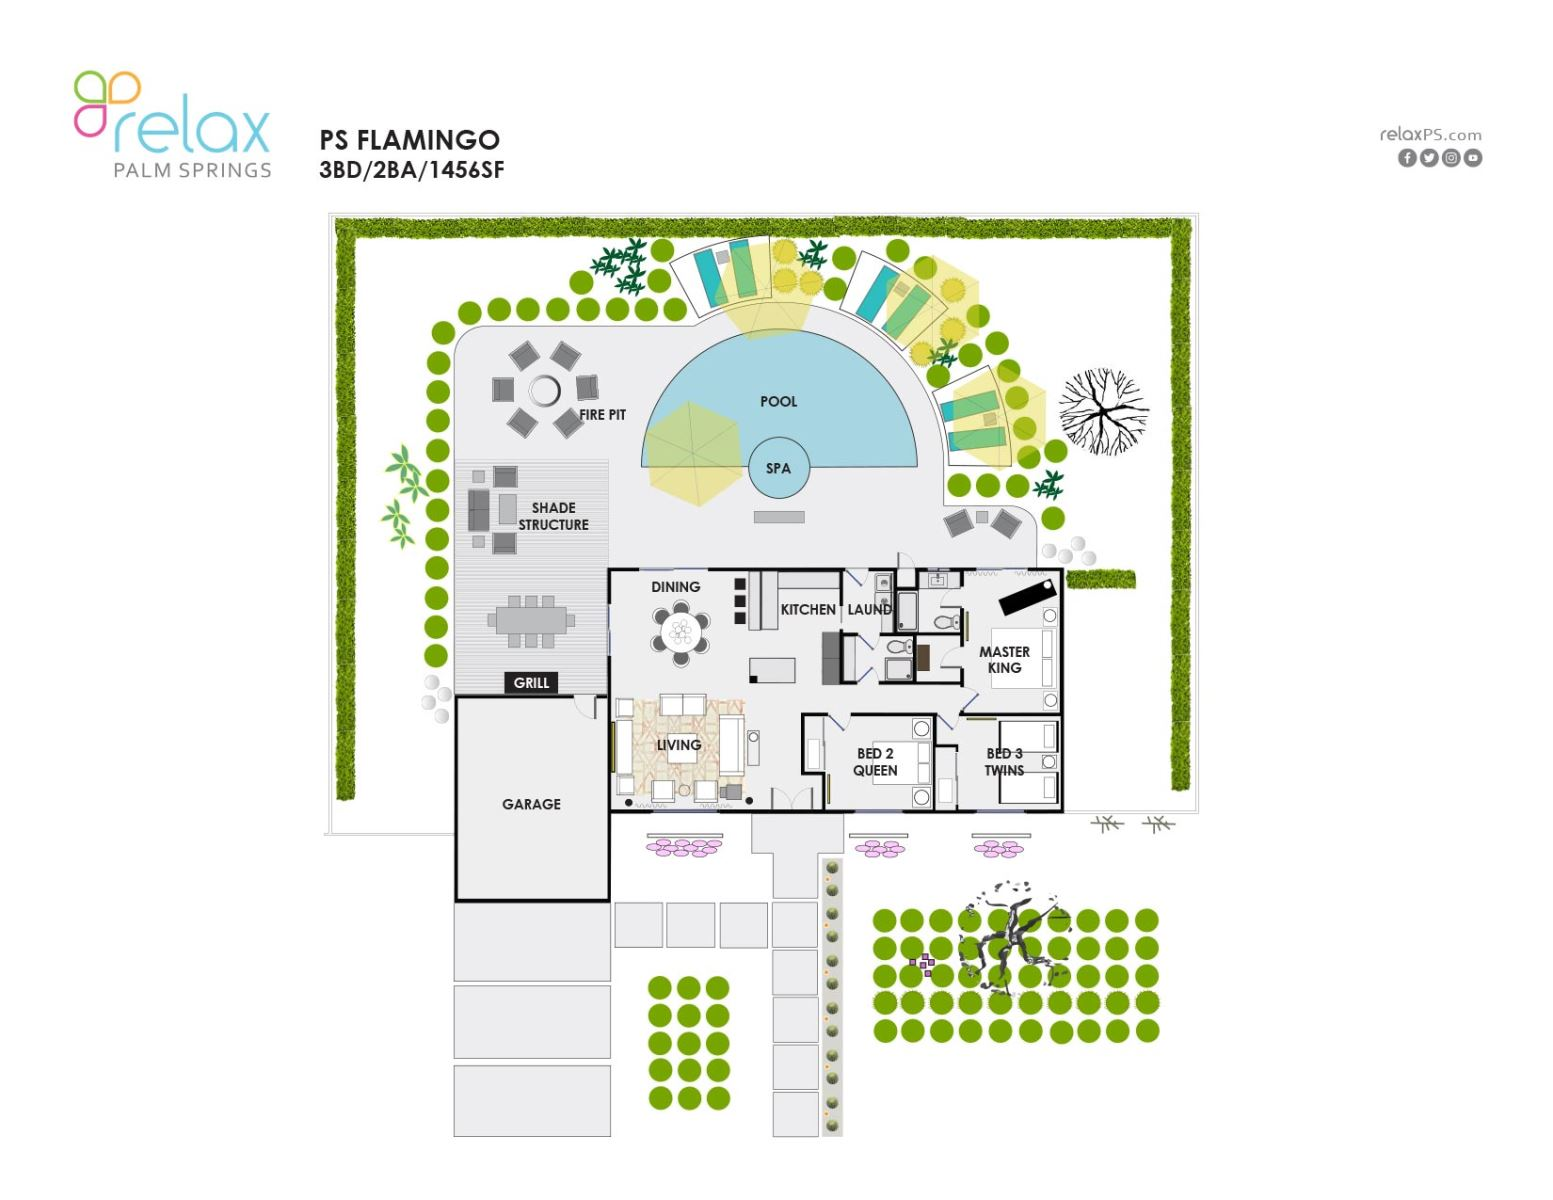 Floor Plan for Modern and Comfortable Luxury Meets Charm and Whimsy!